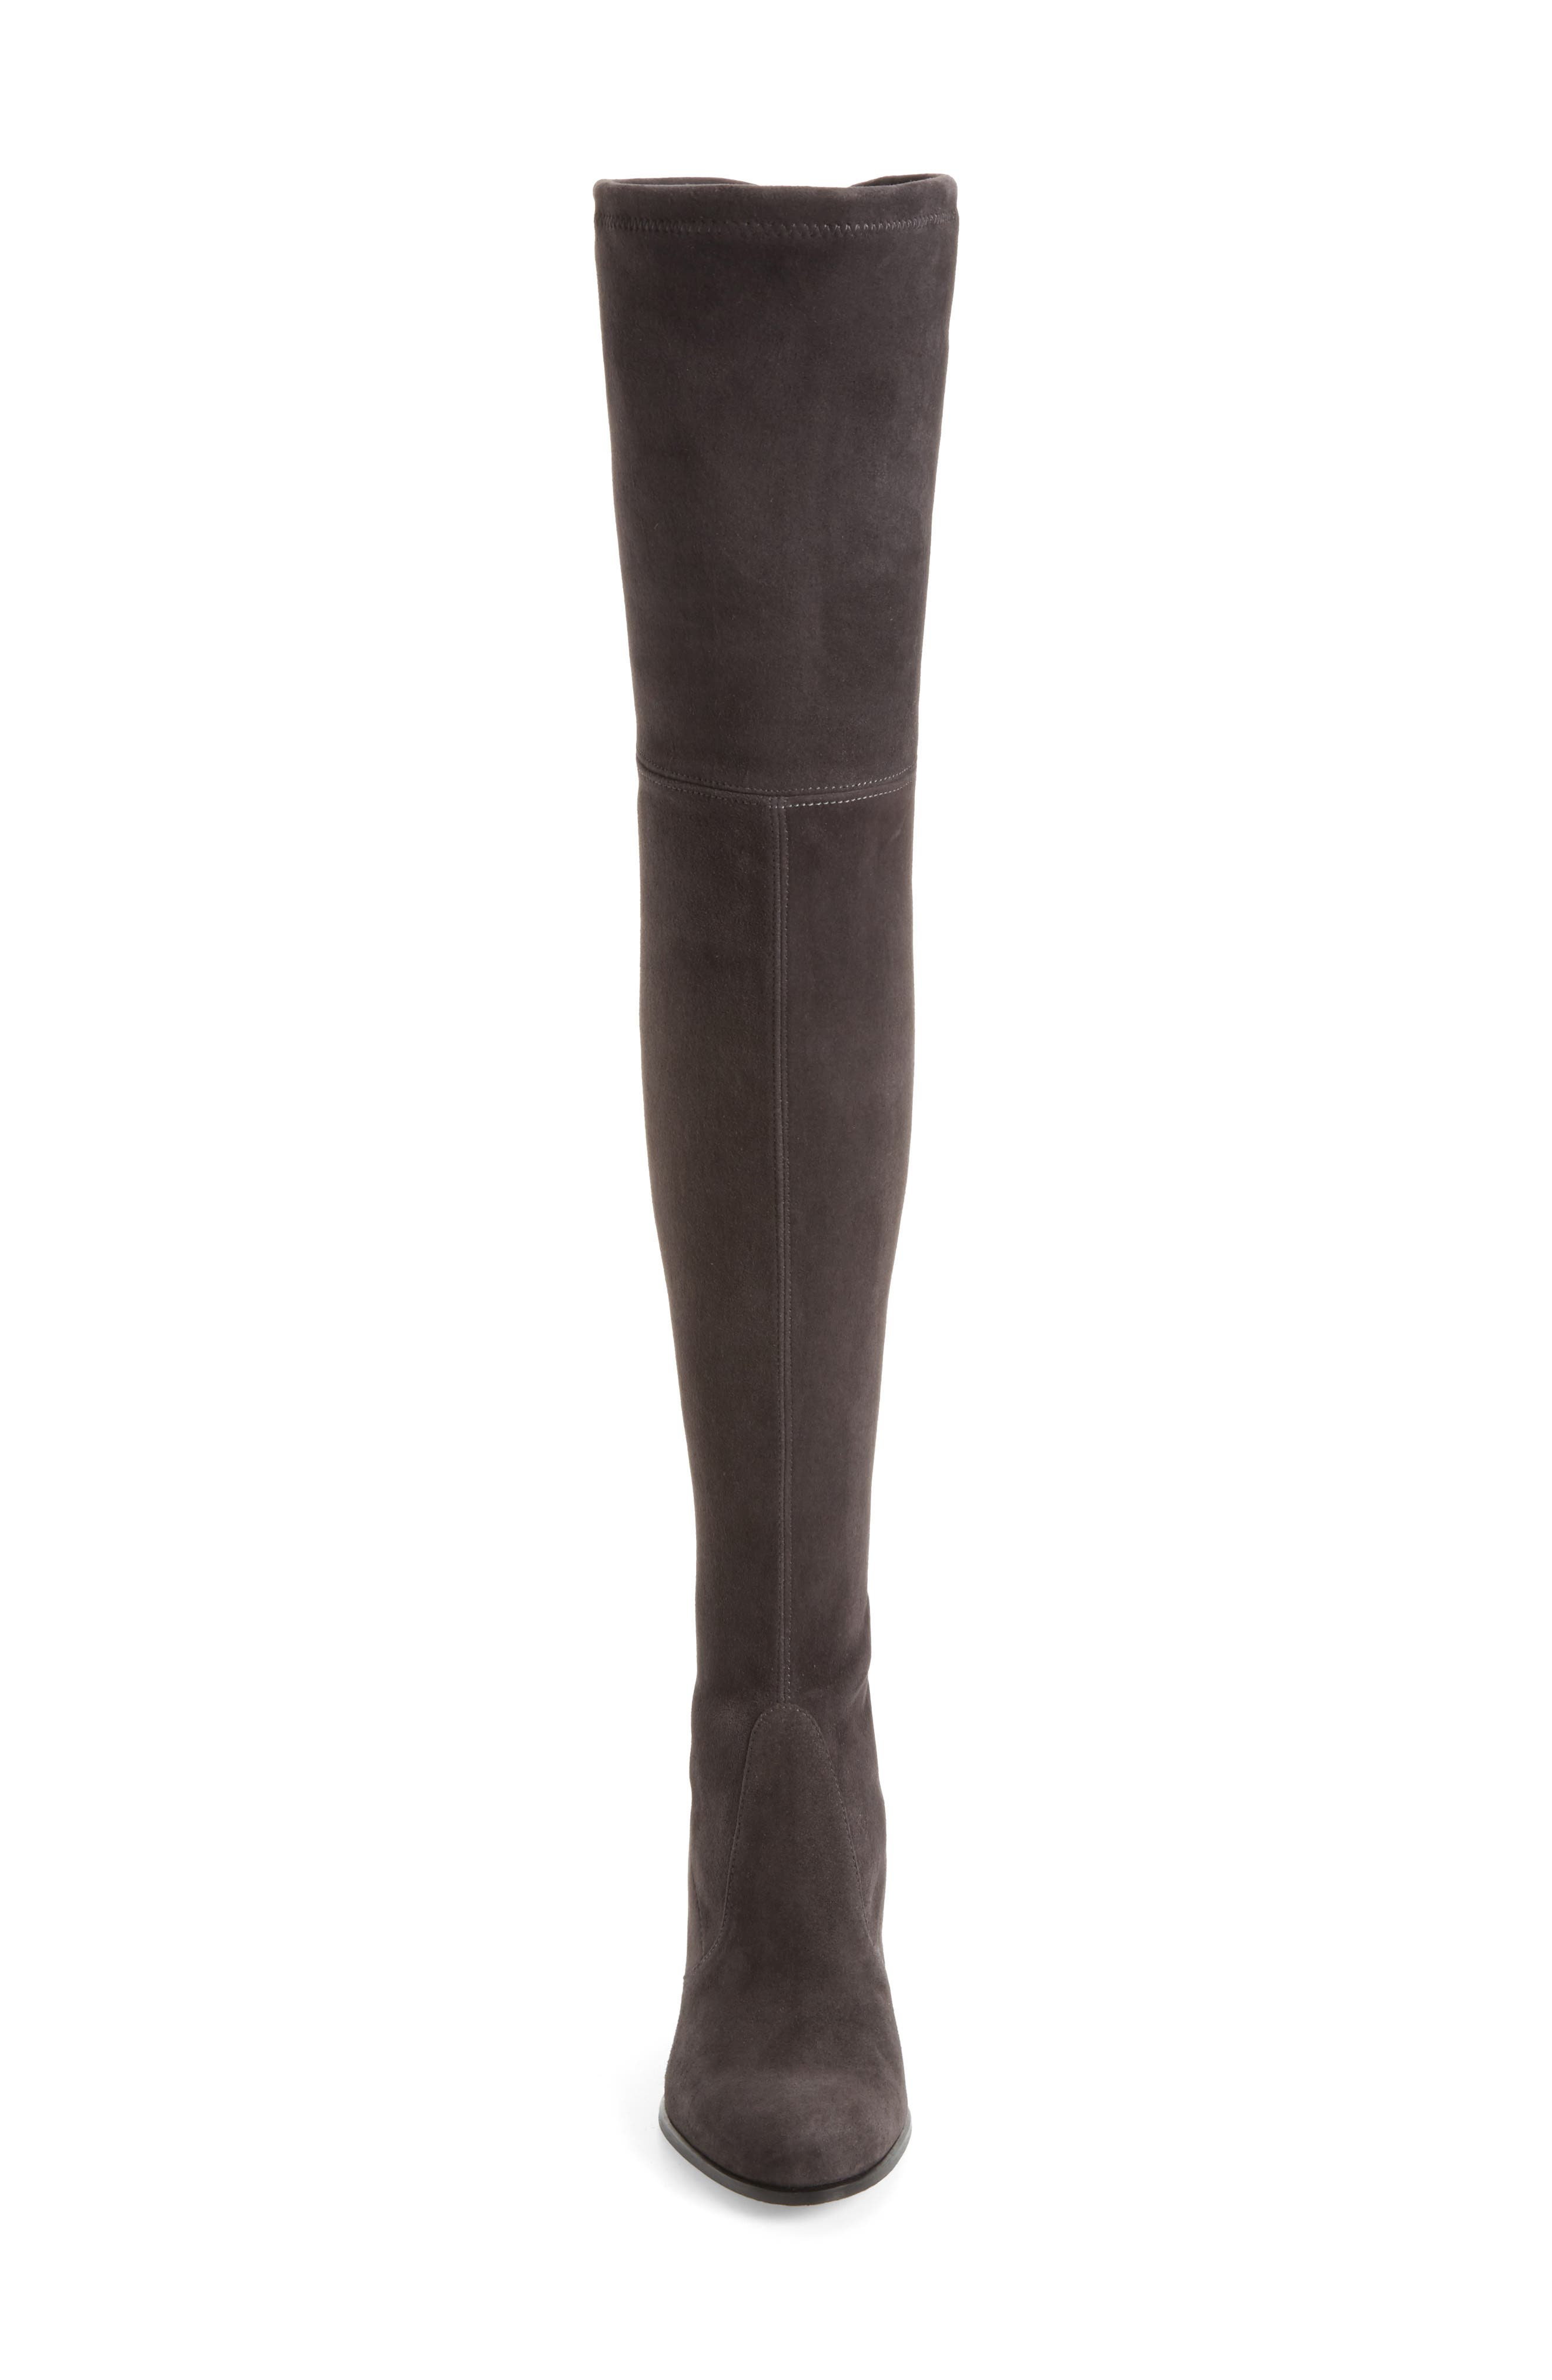 Hiline Over the Knee Boot,                             Alternate thumbnail 35, color,